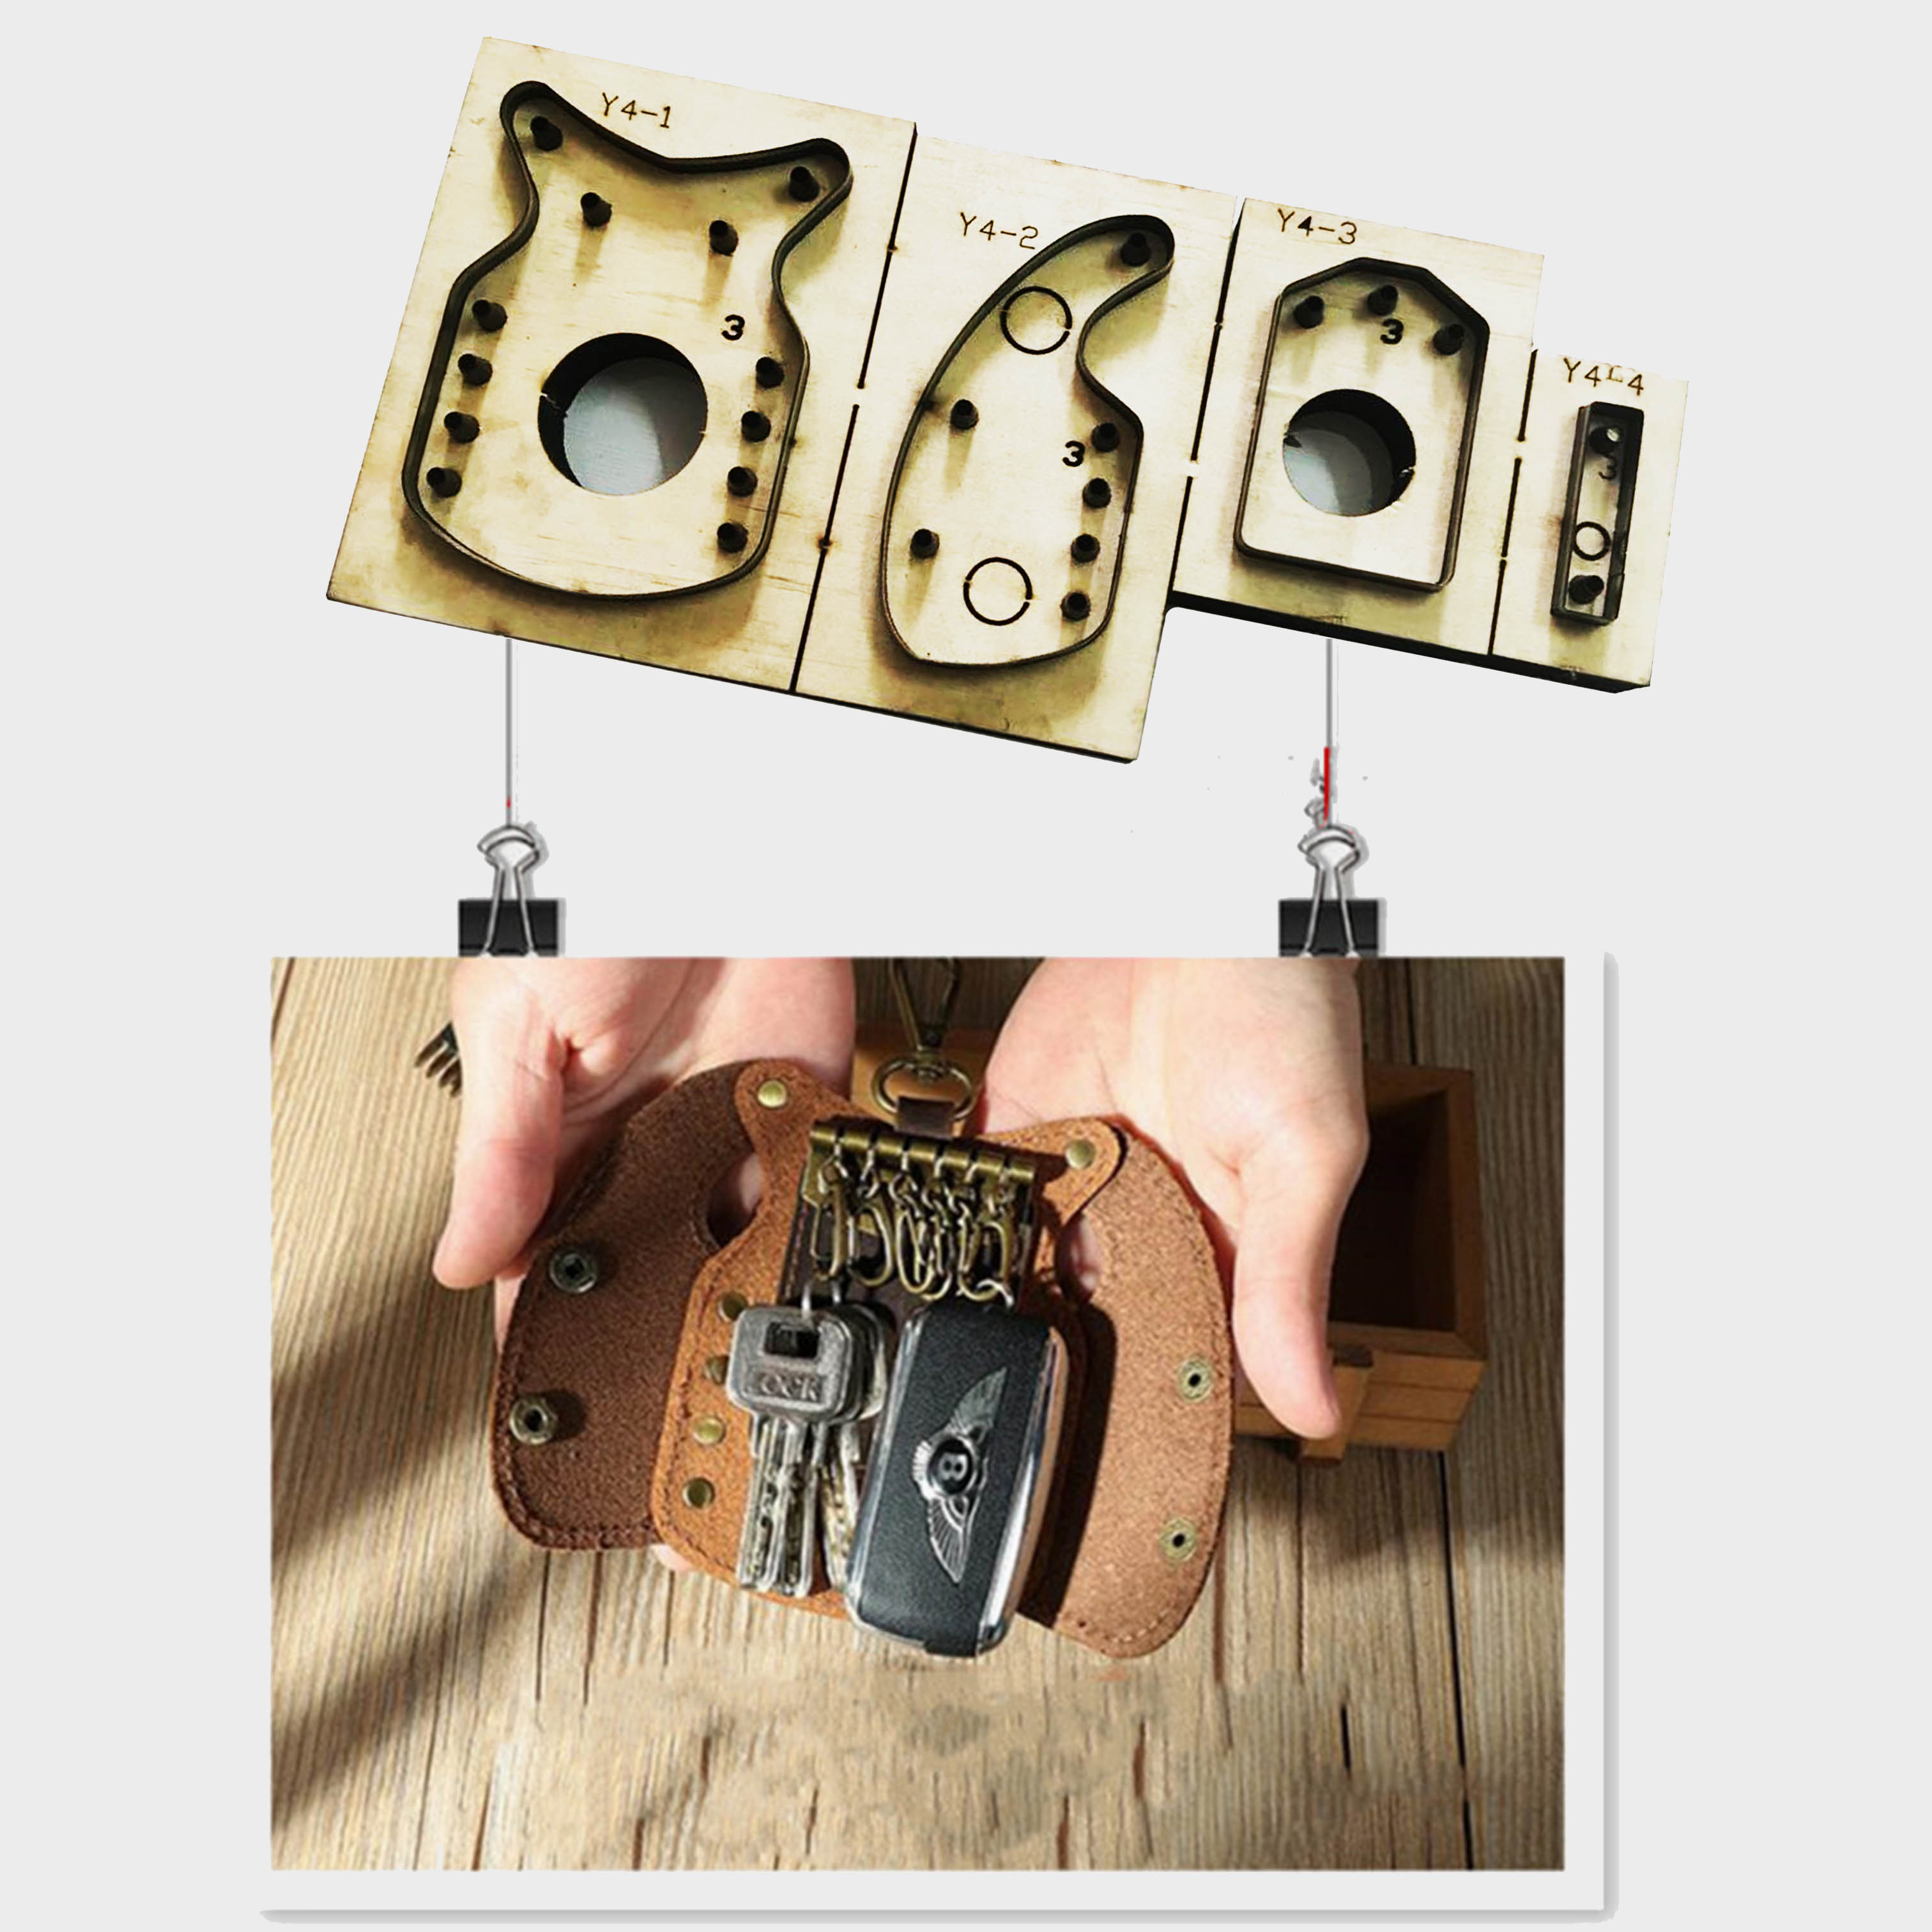 Key Ring Leather Cutting Die Die Cut Wooden Template Steel Punch Mold Crafts